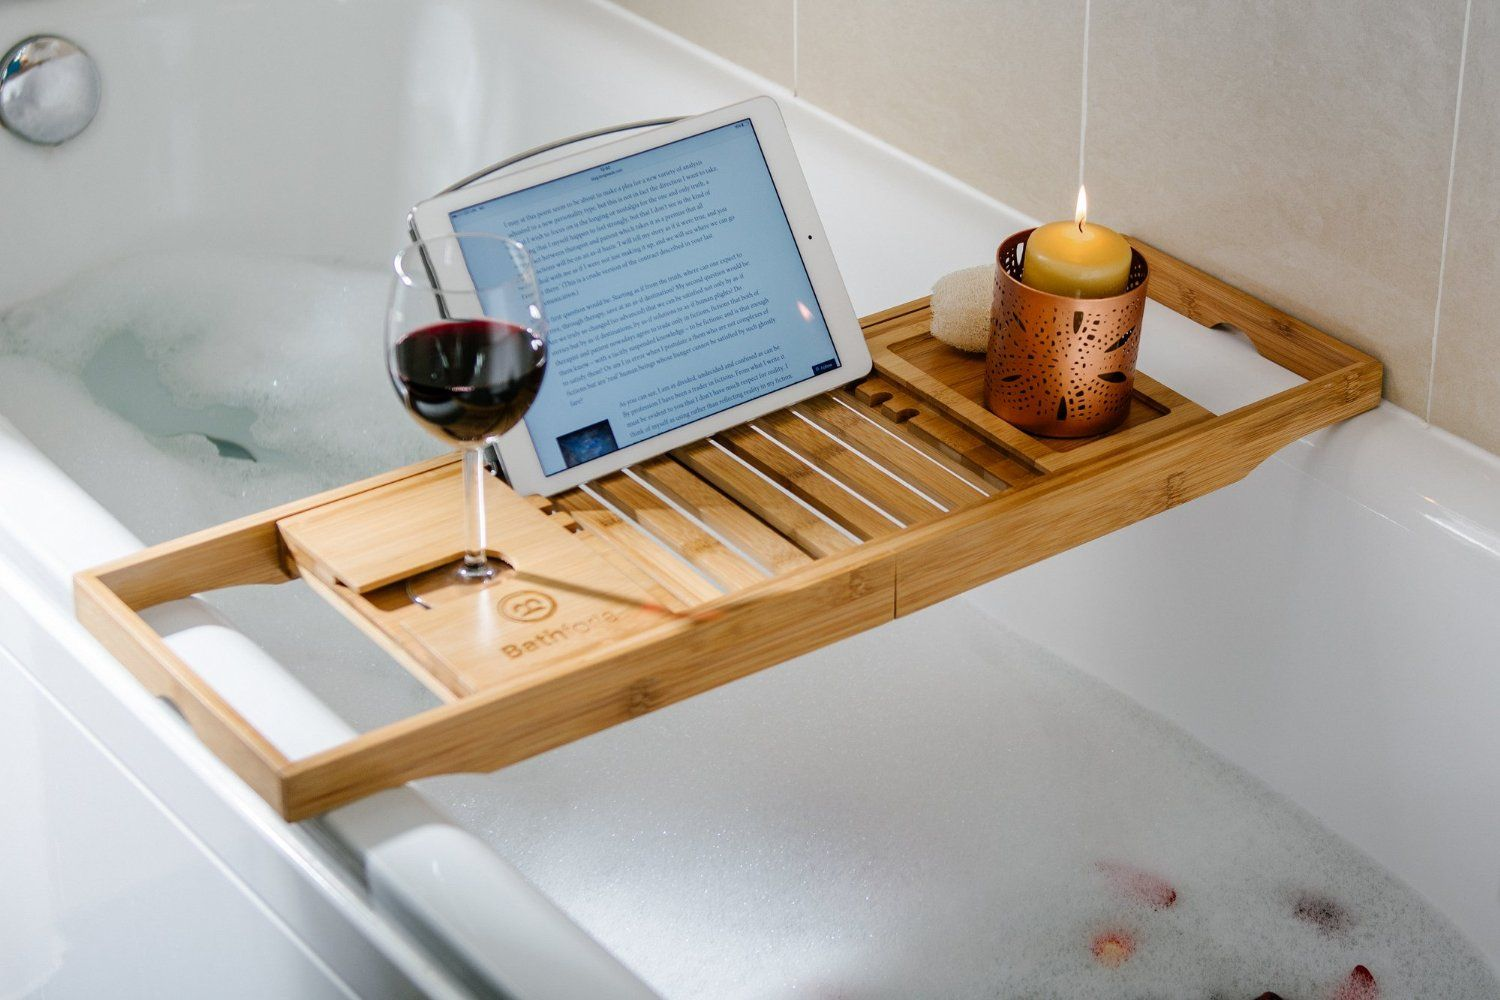 Amazon.com - Bathforia Bathtub Caddy: Bamboo Bathtub Caddy Puts The ...